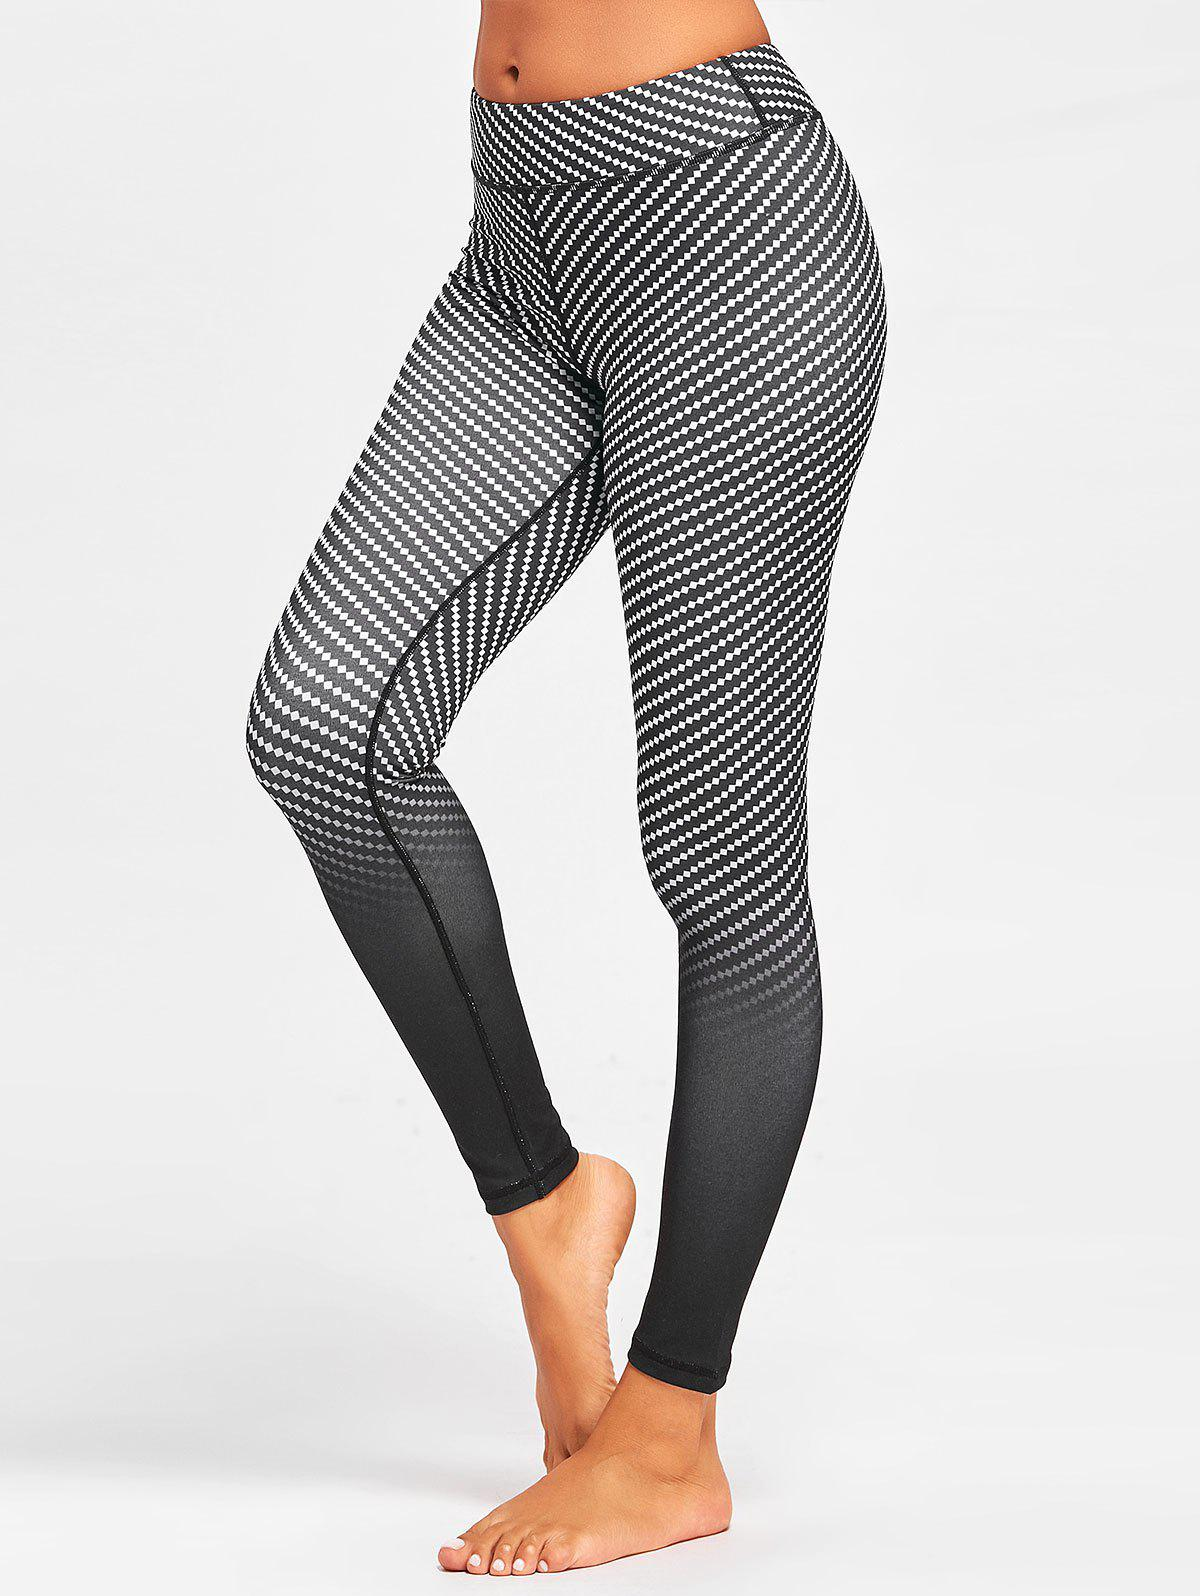 Chic Fitness Argyle Printed Ombre  Leggings